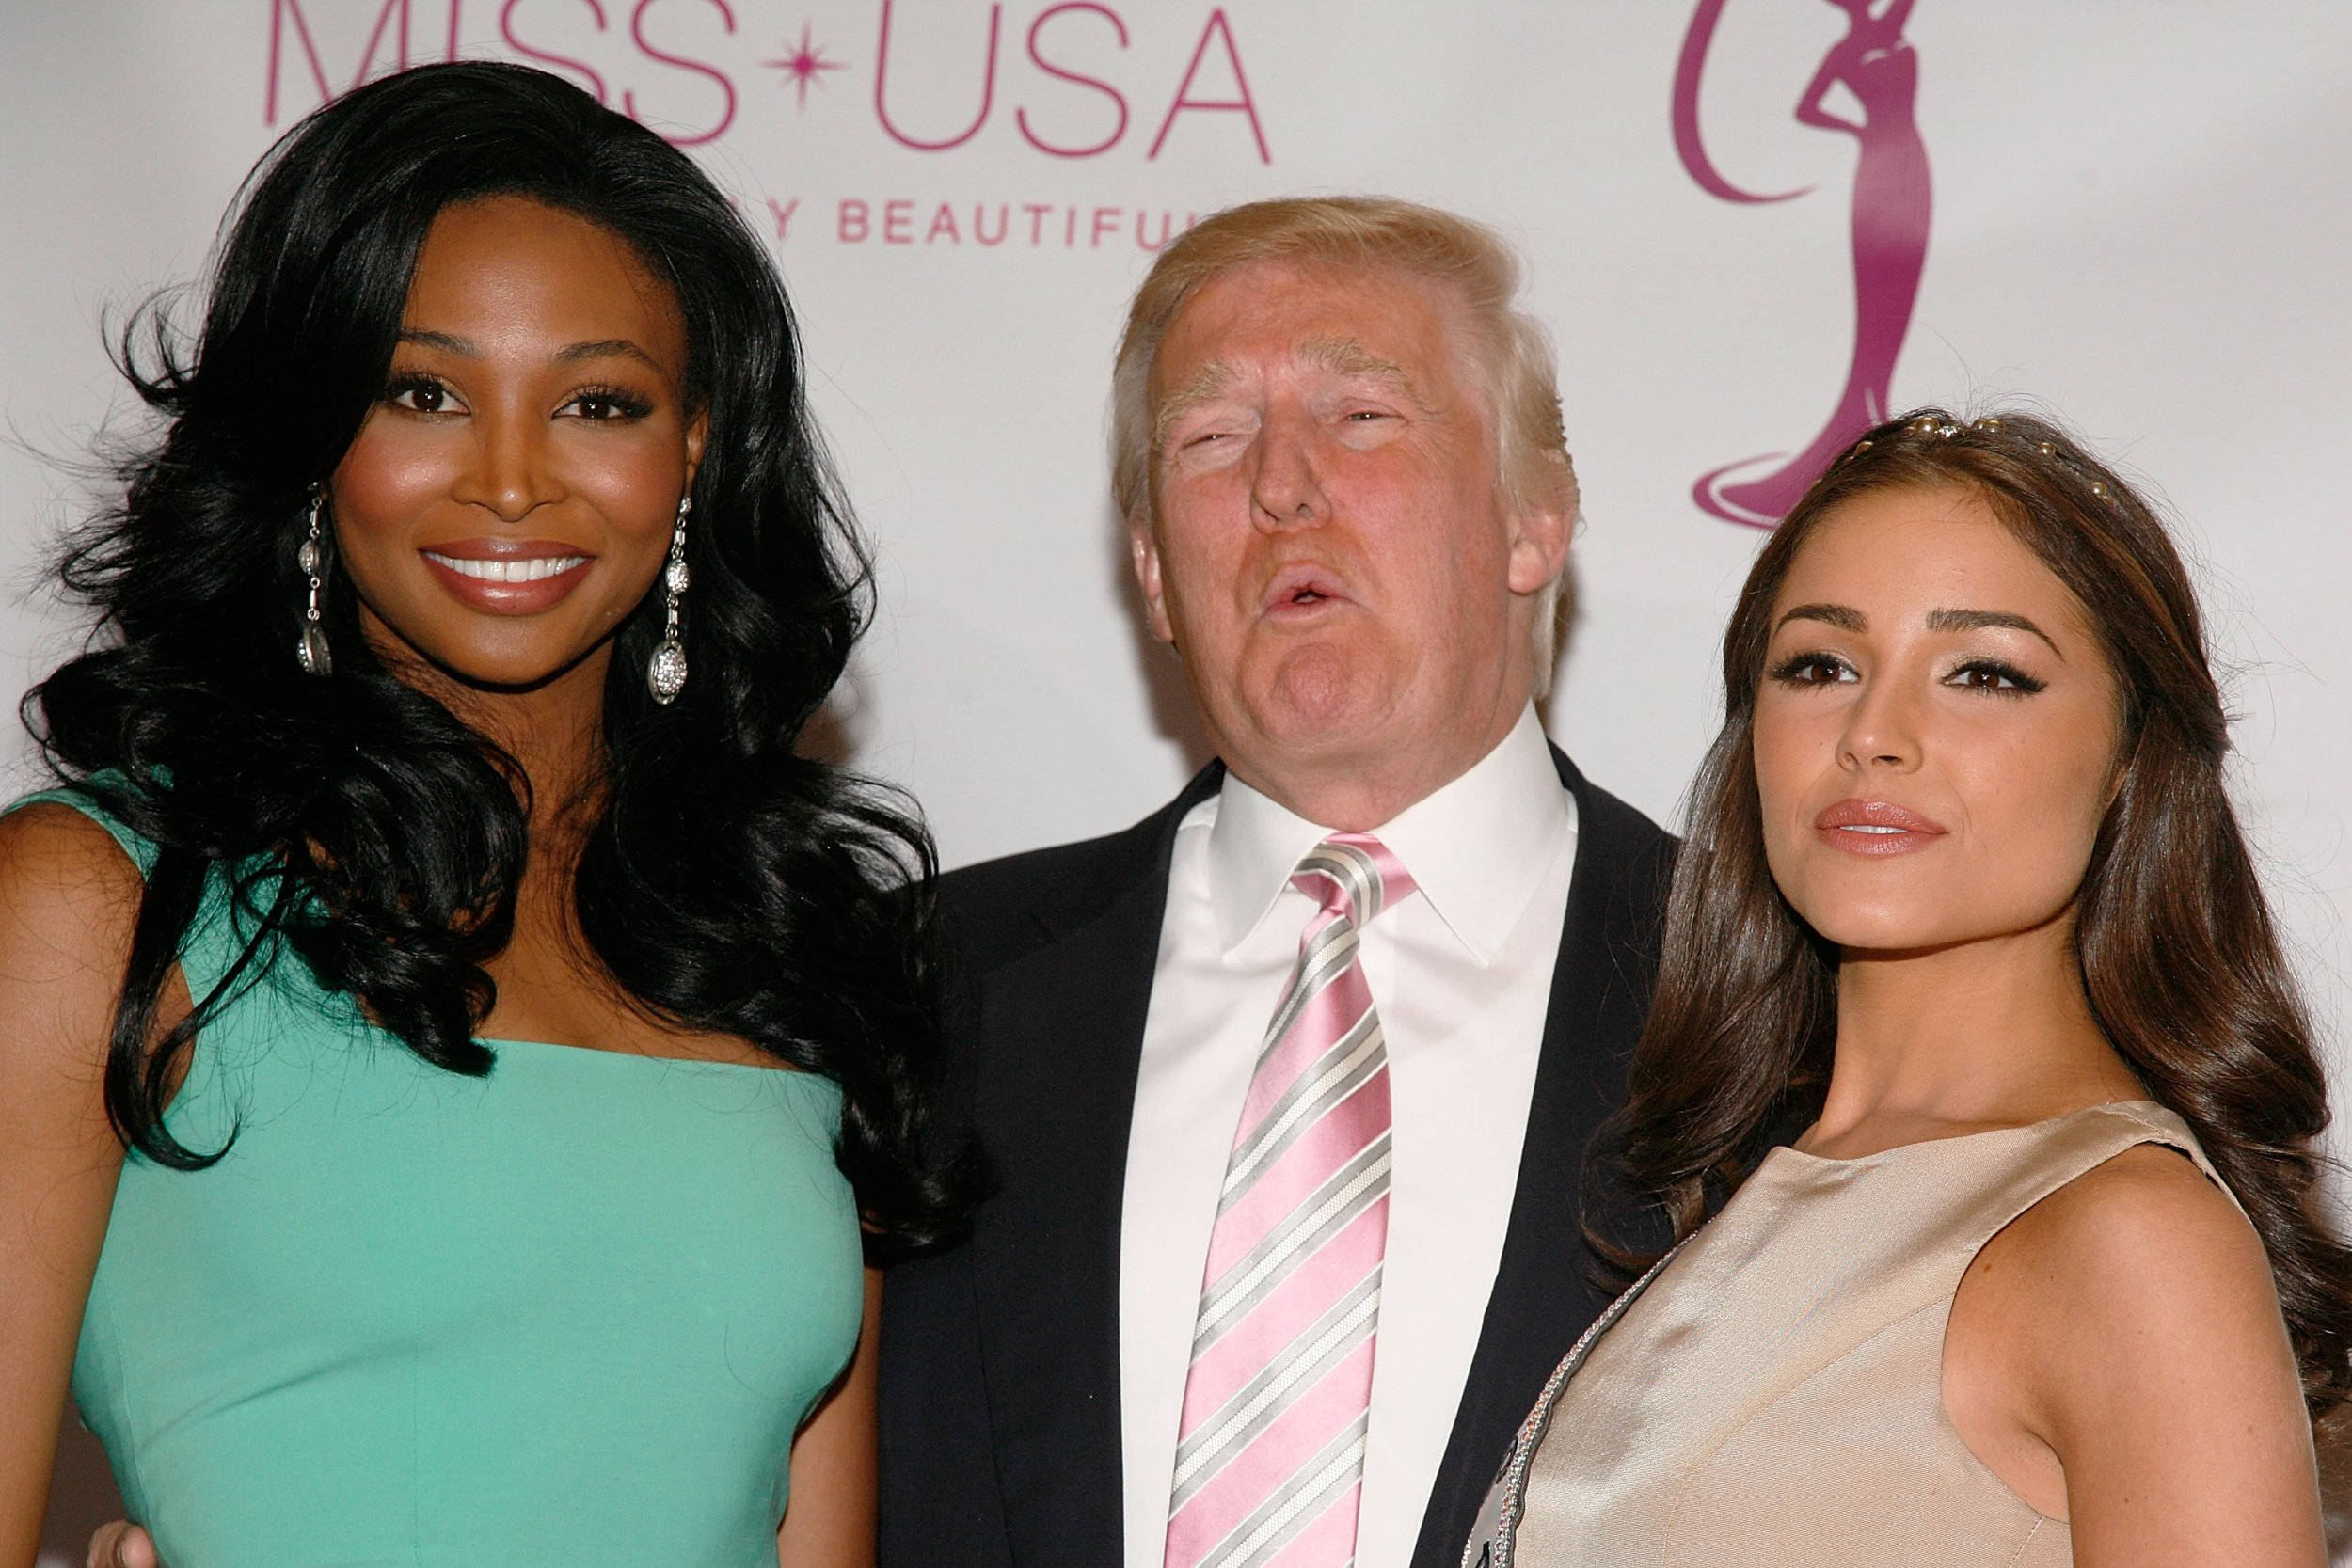 beauty queens claim donald trump came into pageant dressing rooms beauty queens claim donald trump came into pageant dressing rooms unannounced